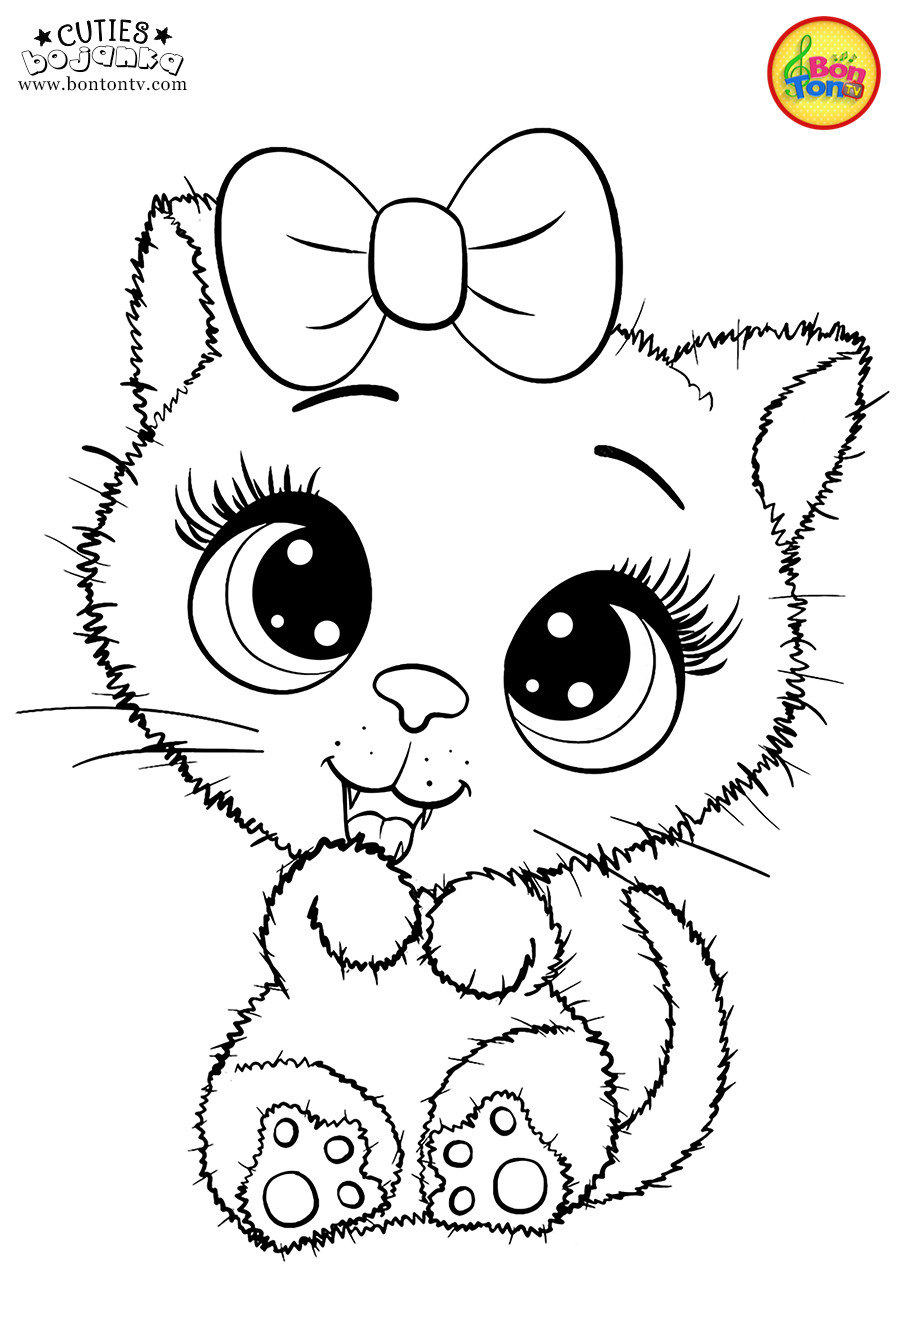 Cuties Coloring Pages For Kids Free Preschool Printables Slatkice Bojanke Cute Animal Unicorn Coloring Pages Free Kids Coloring Pages Free Coloring Pages